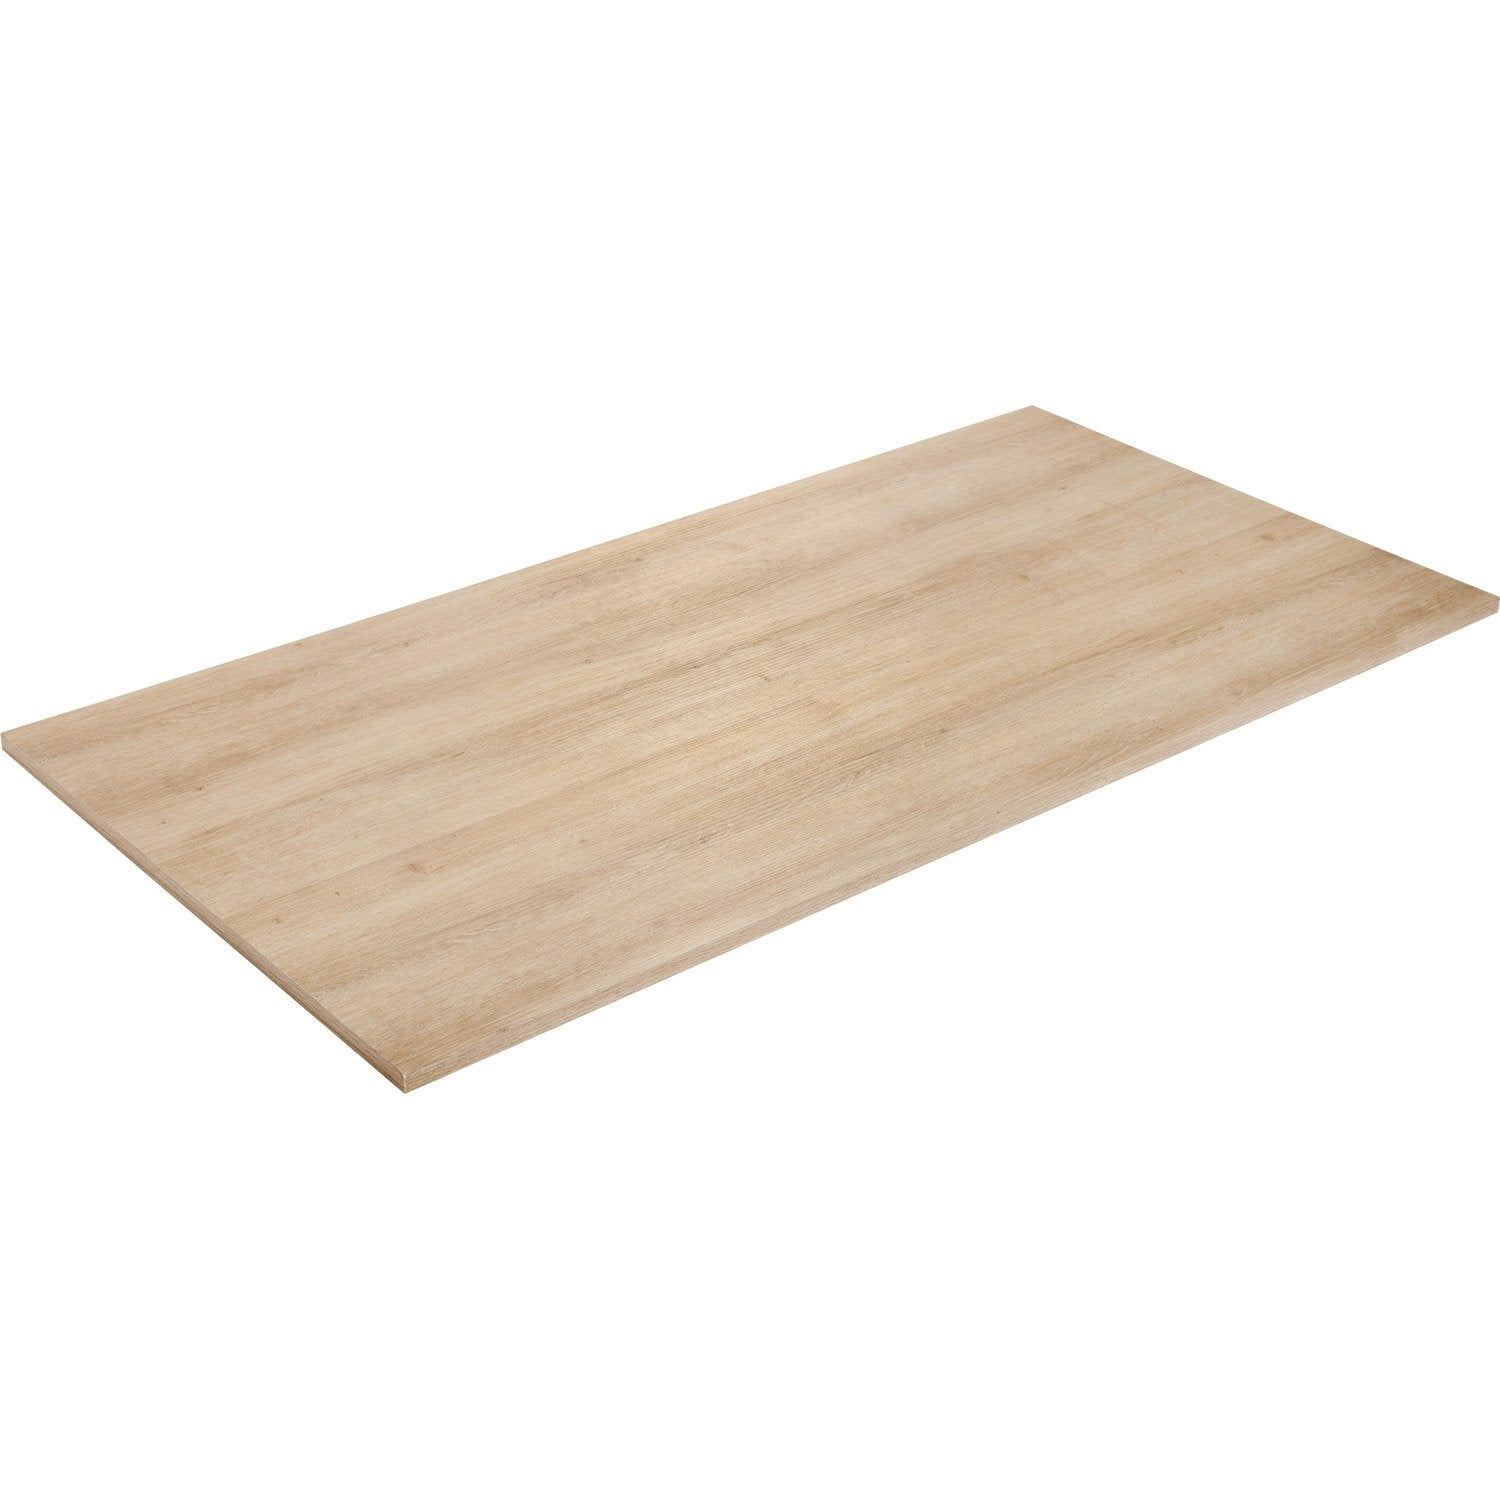 Plateau de table agglom r ch ne x cm x for Plateau table exterieur